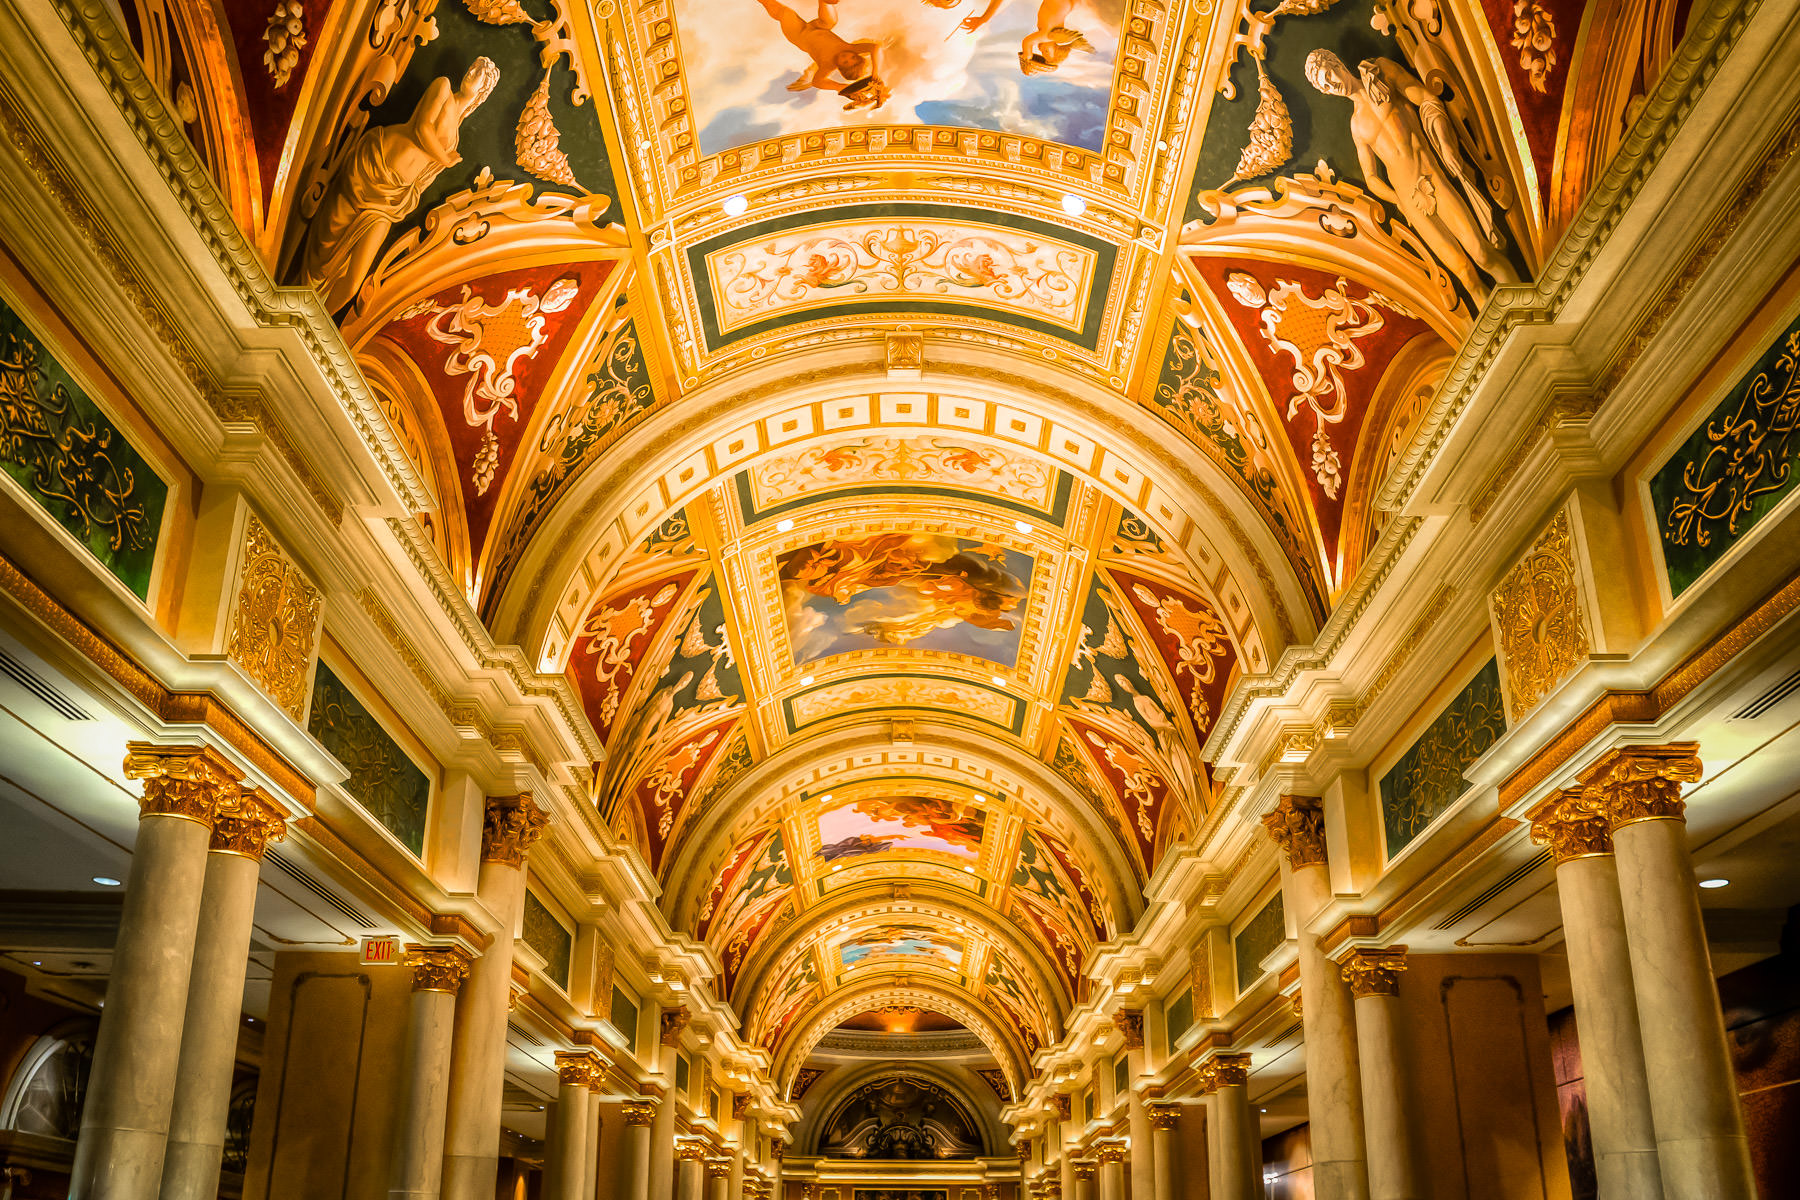 An intricately-painted vaulted ceiling inside The Venetian, Las Vegas.